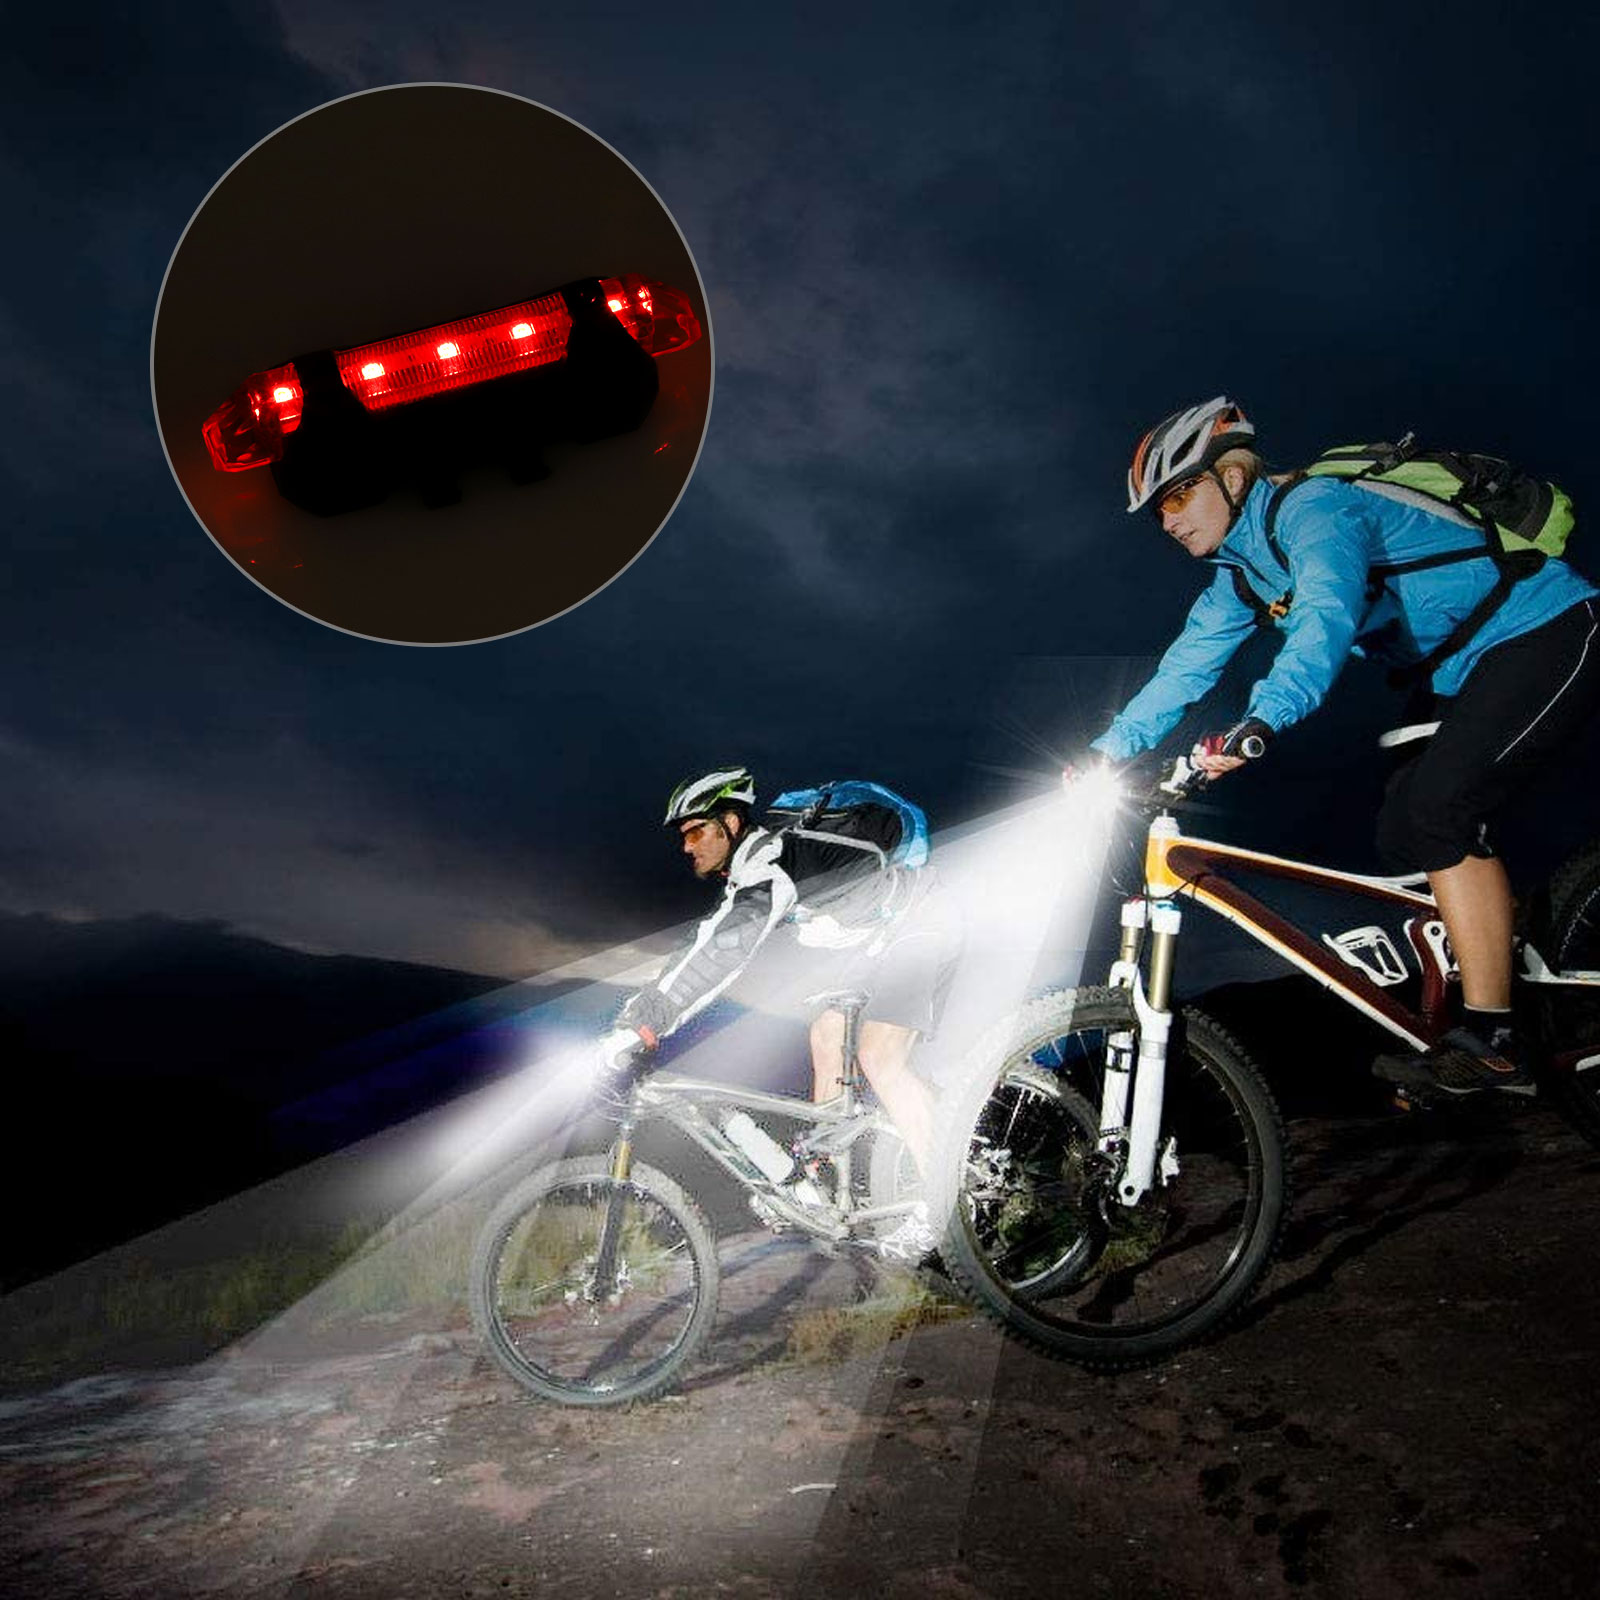 thumbnail 5 - IP65-Bike-Front-Rear-LED-Light-Set-USB-Rechargeable-Bicycle-Headlight-Taillight